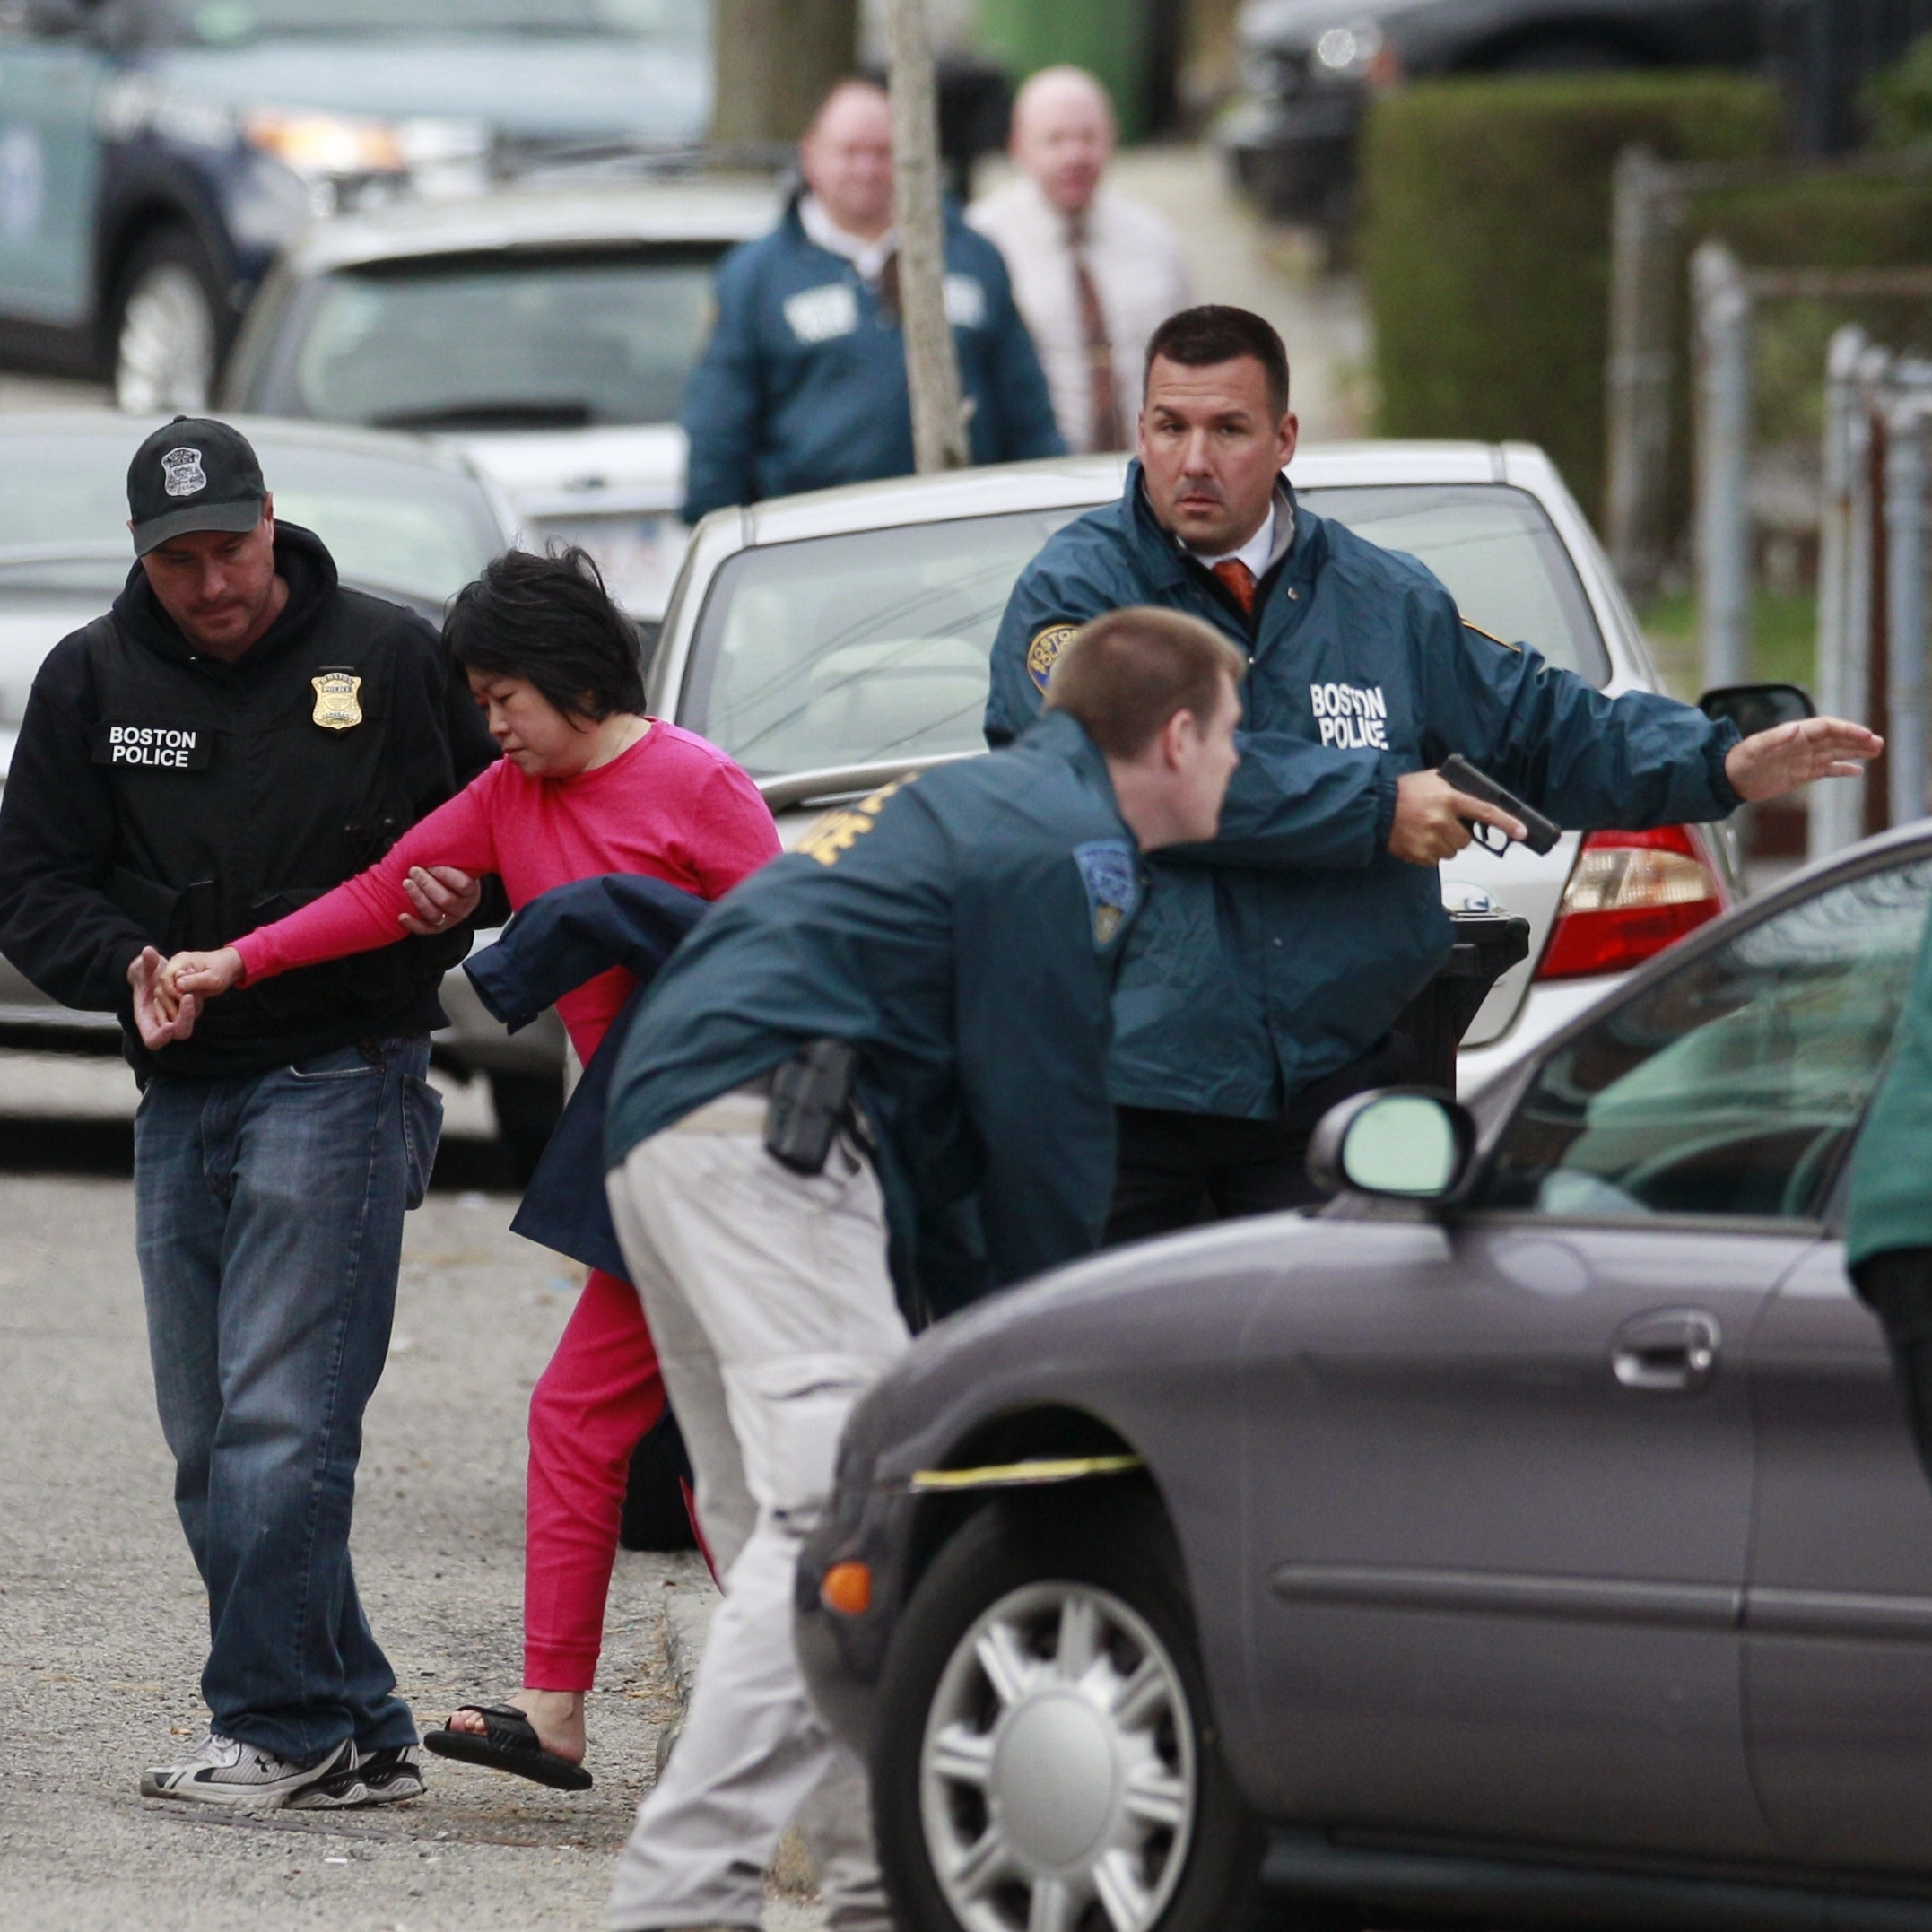 A neighbor is escorted to safety as police surround a home in Watertown.